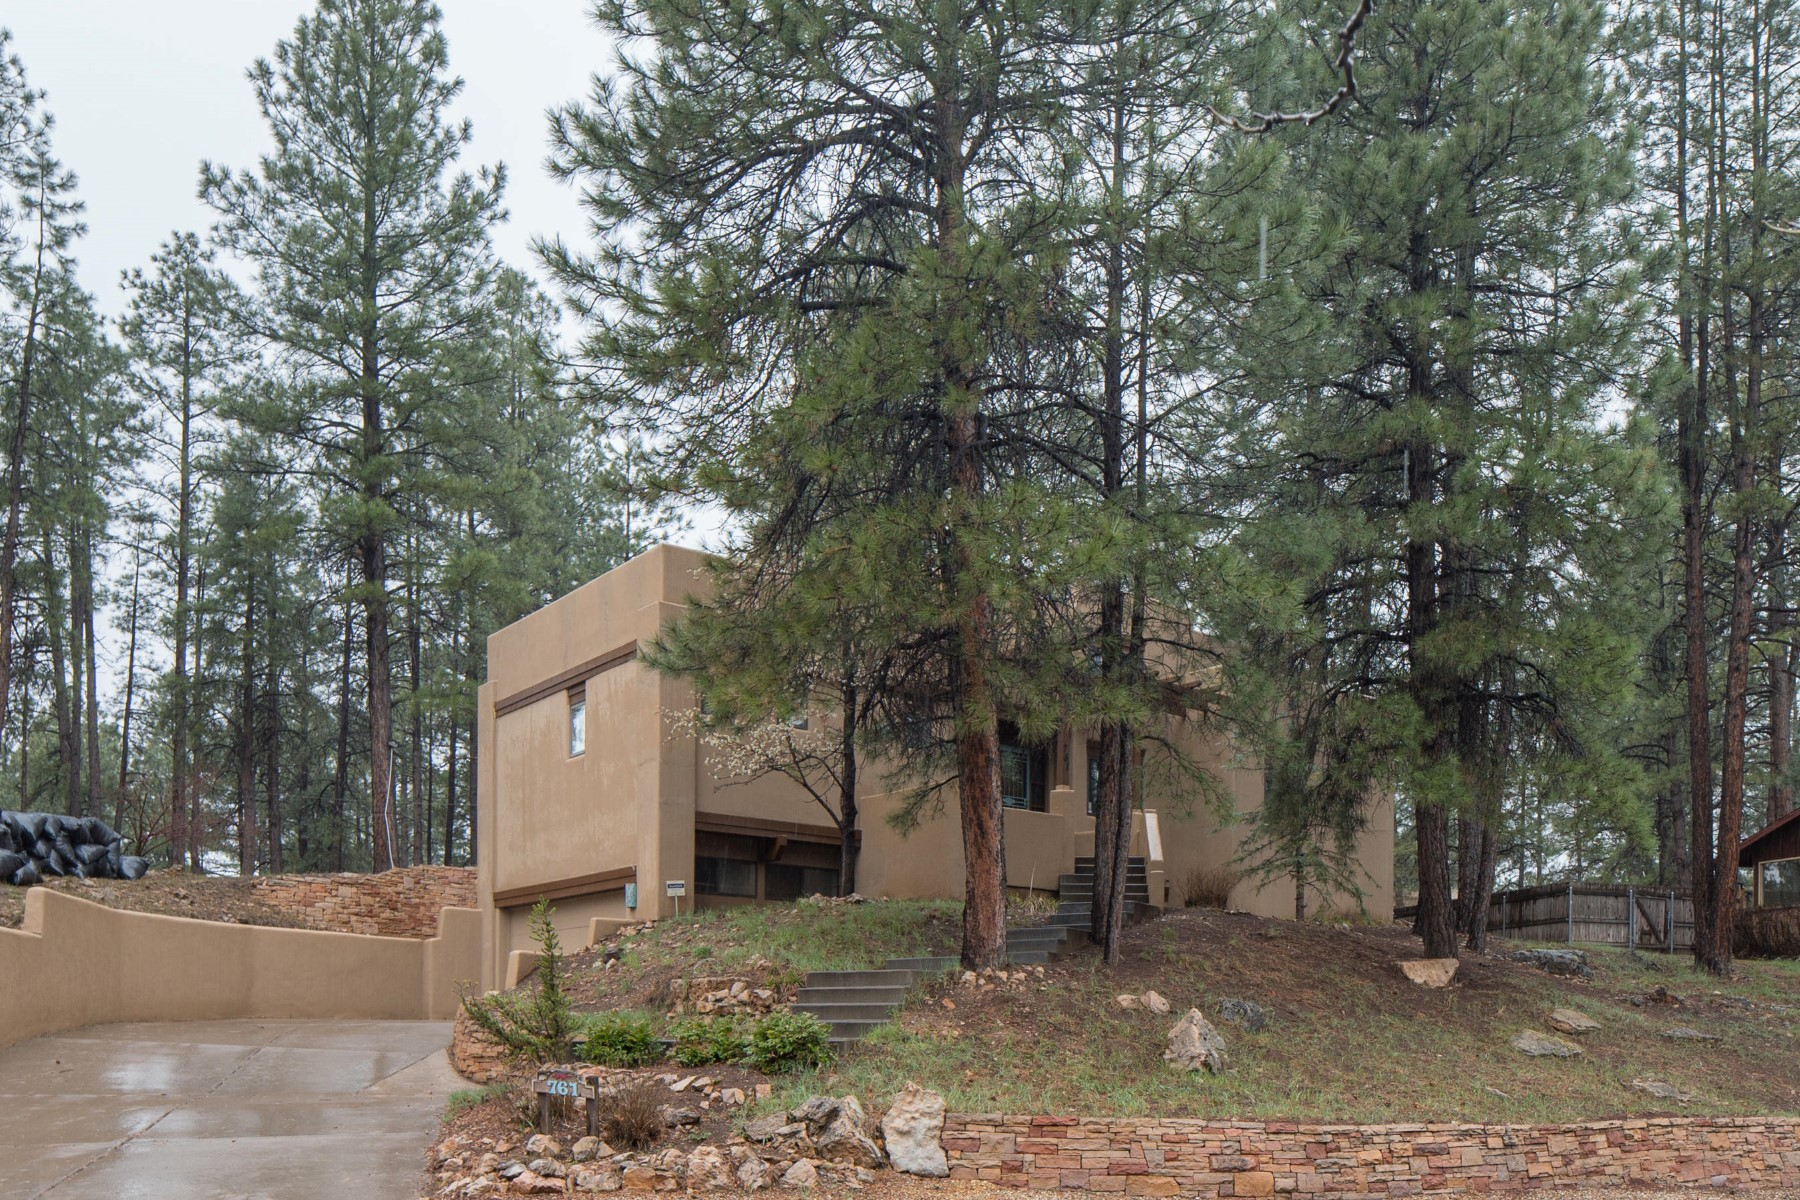 Single Family Home for Sale at Southwestern Pueblo Adobe in Flagstaff 761 W University Heights DR S Flagstaff, Arizona, 86005 United States